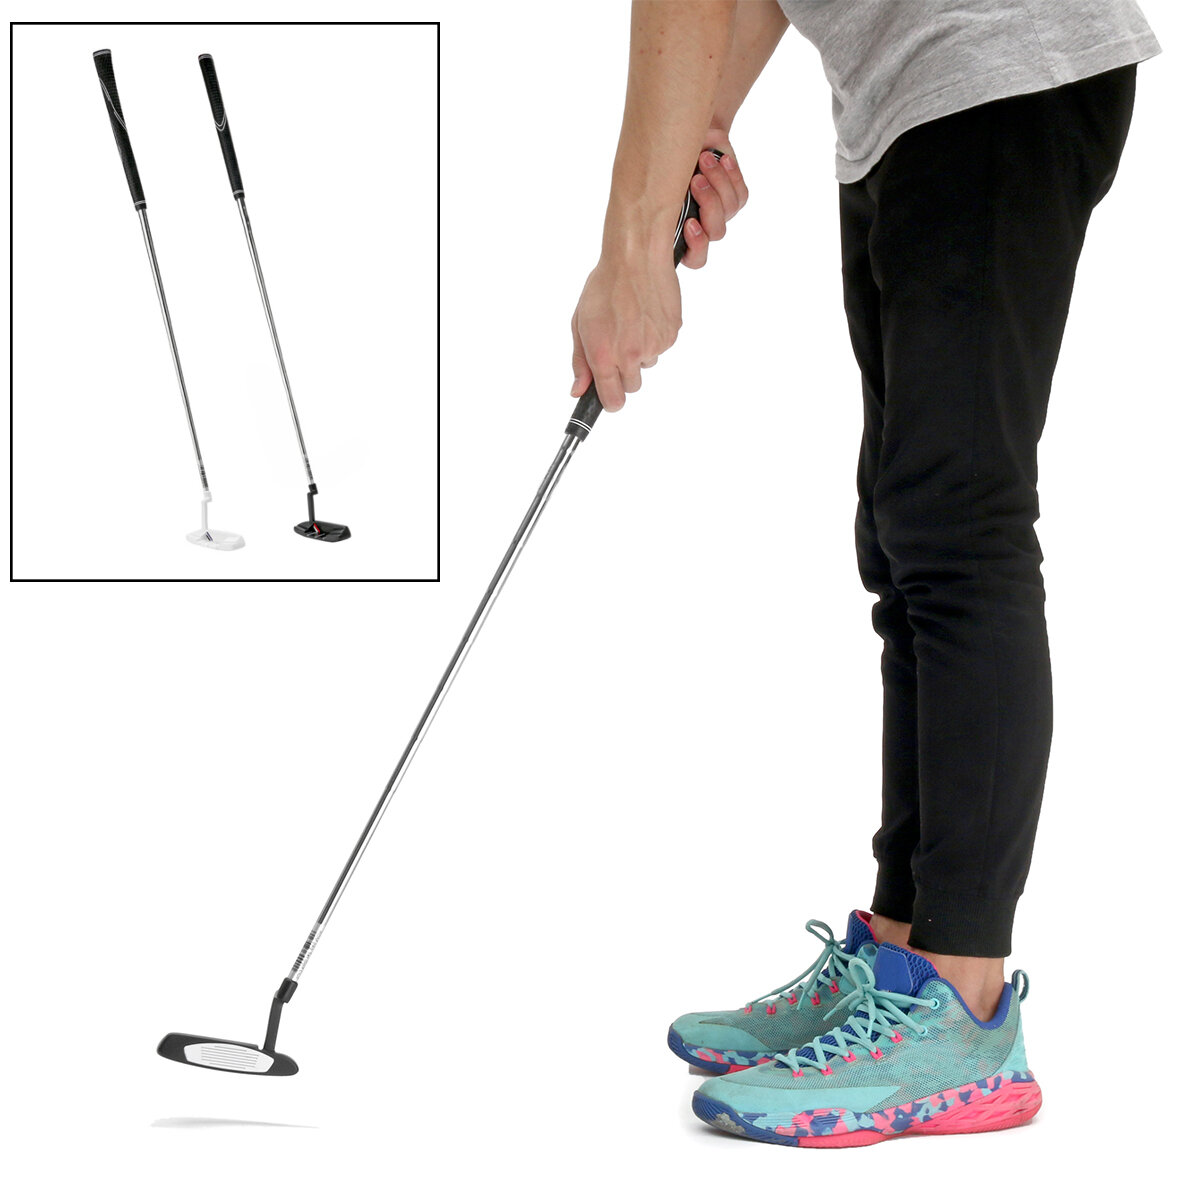 34inch 35inch Stainless Steel Golf Putter Men Women Right Hand Grip Club Game Ball Practice Tool